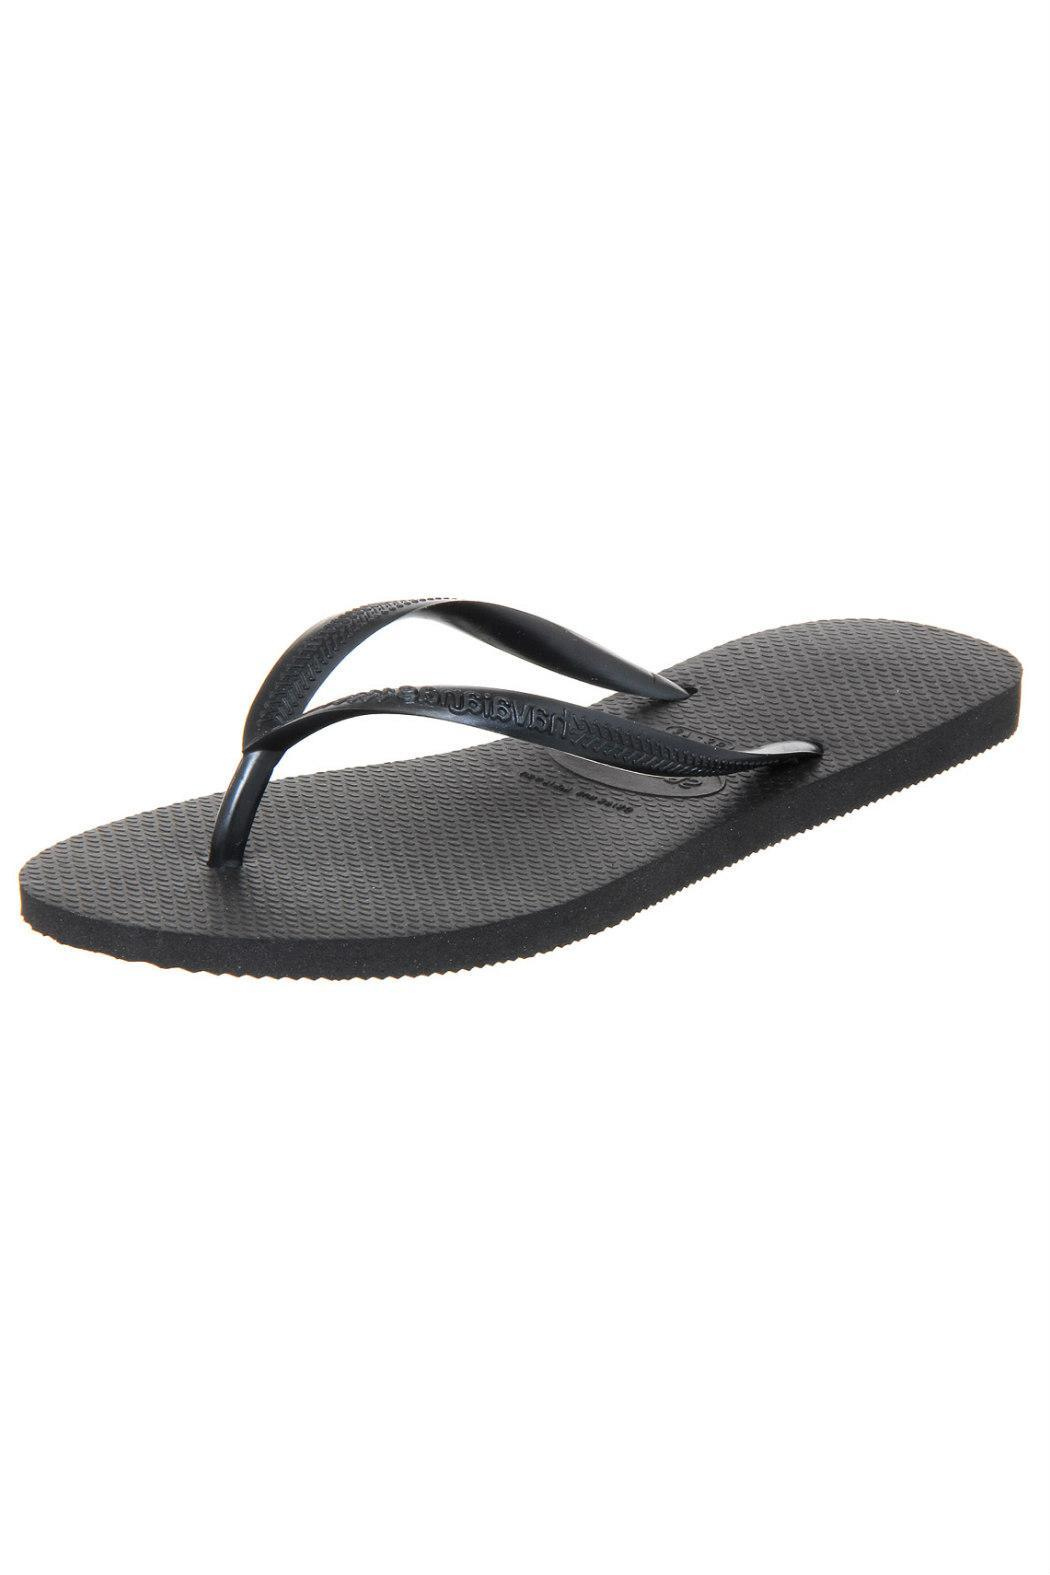 85a5c45fd3b7e7 Havaianas Slim Flip Flop from Statesboro by Sole — Shoptiques